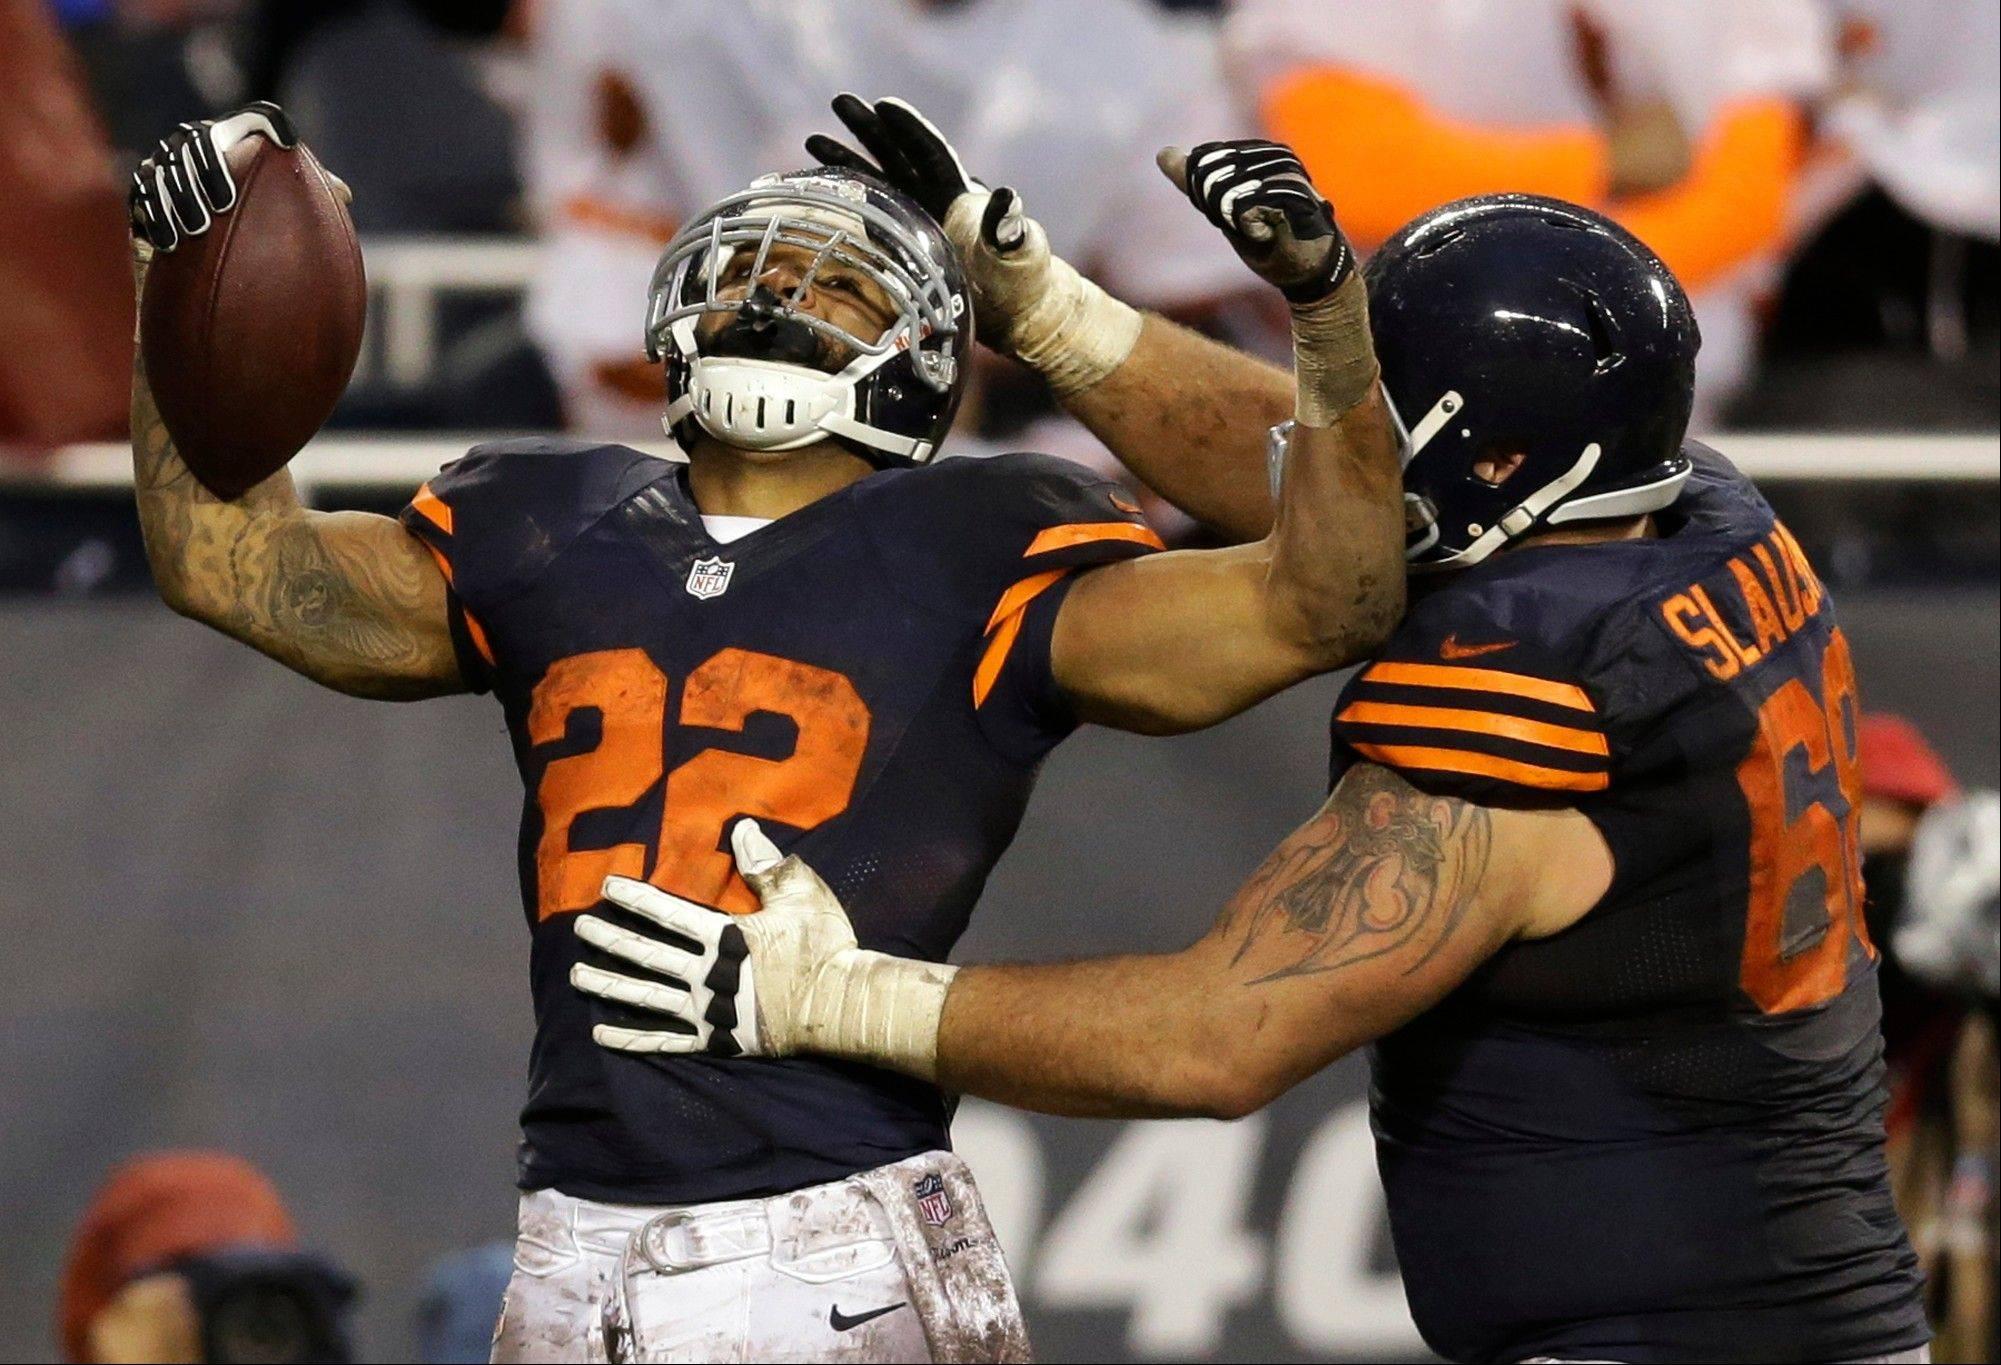 Bears need Forte-fied front vs. Vikings